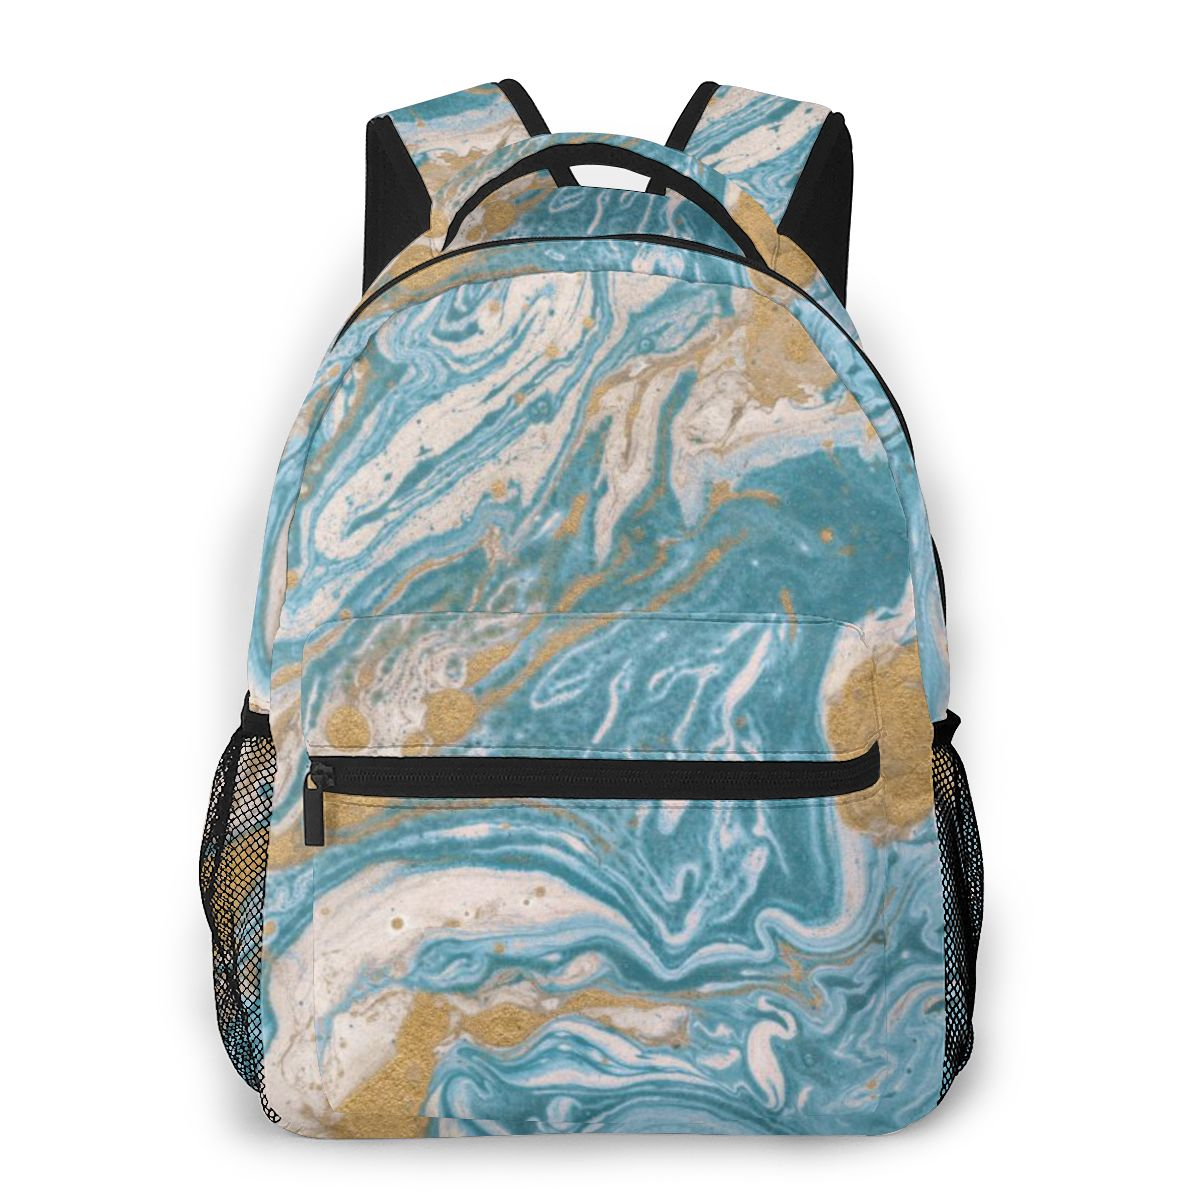 Unisex PU Leather Backpack Camo Joggers Women Teal Print Womens Casual Daypack Mens Travel Sports Bag Boys College Bookbag